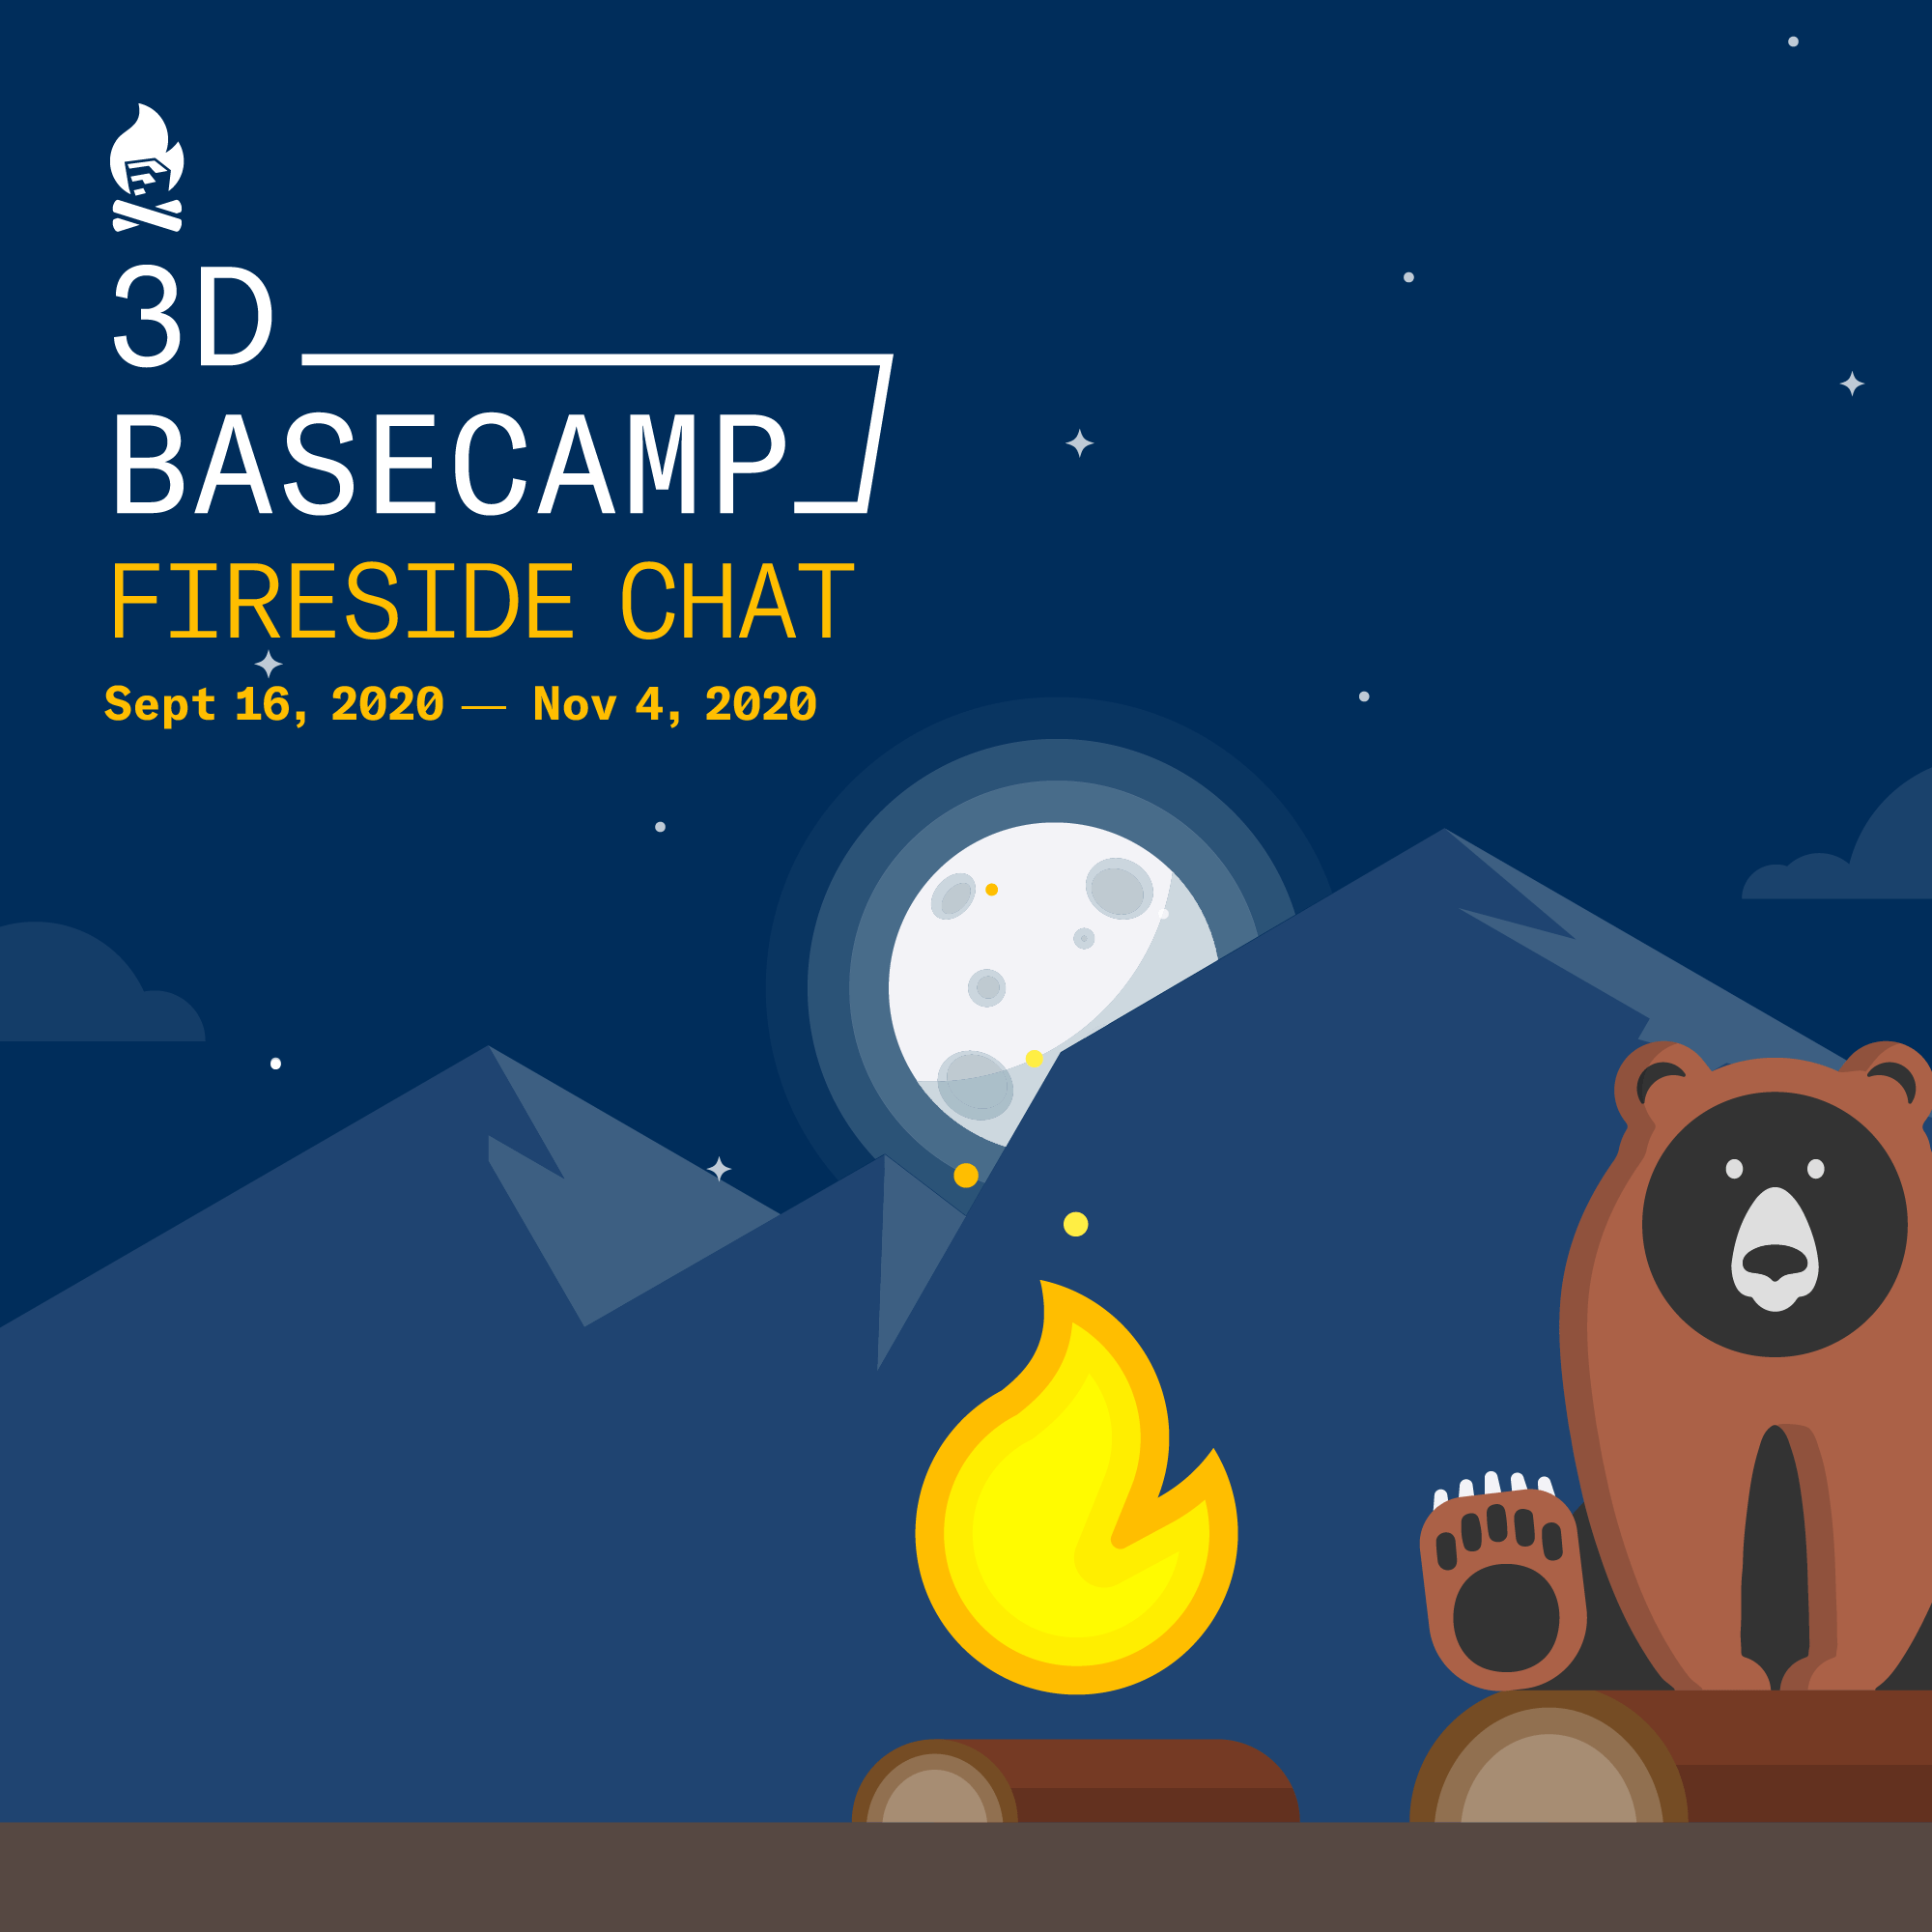 3D Basecamp Fireside Chat